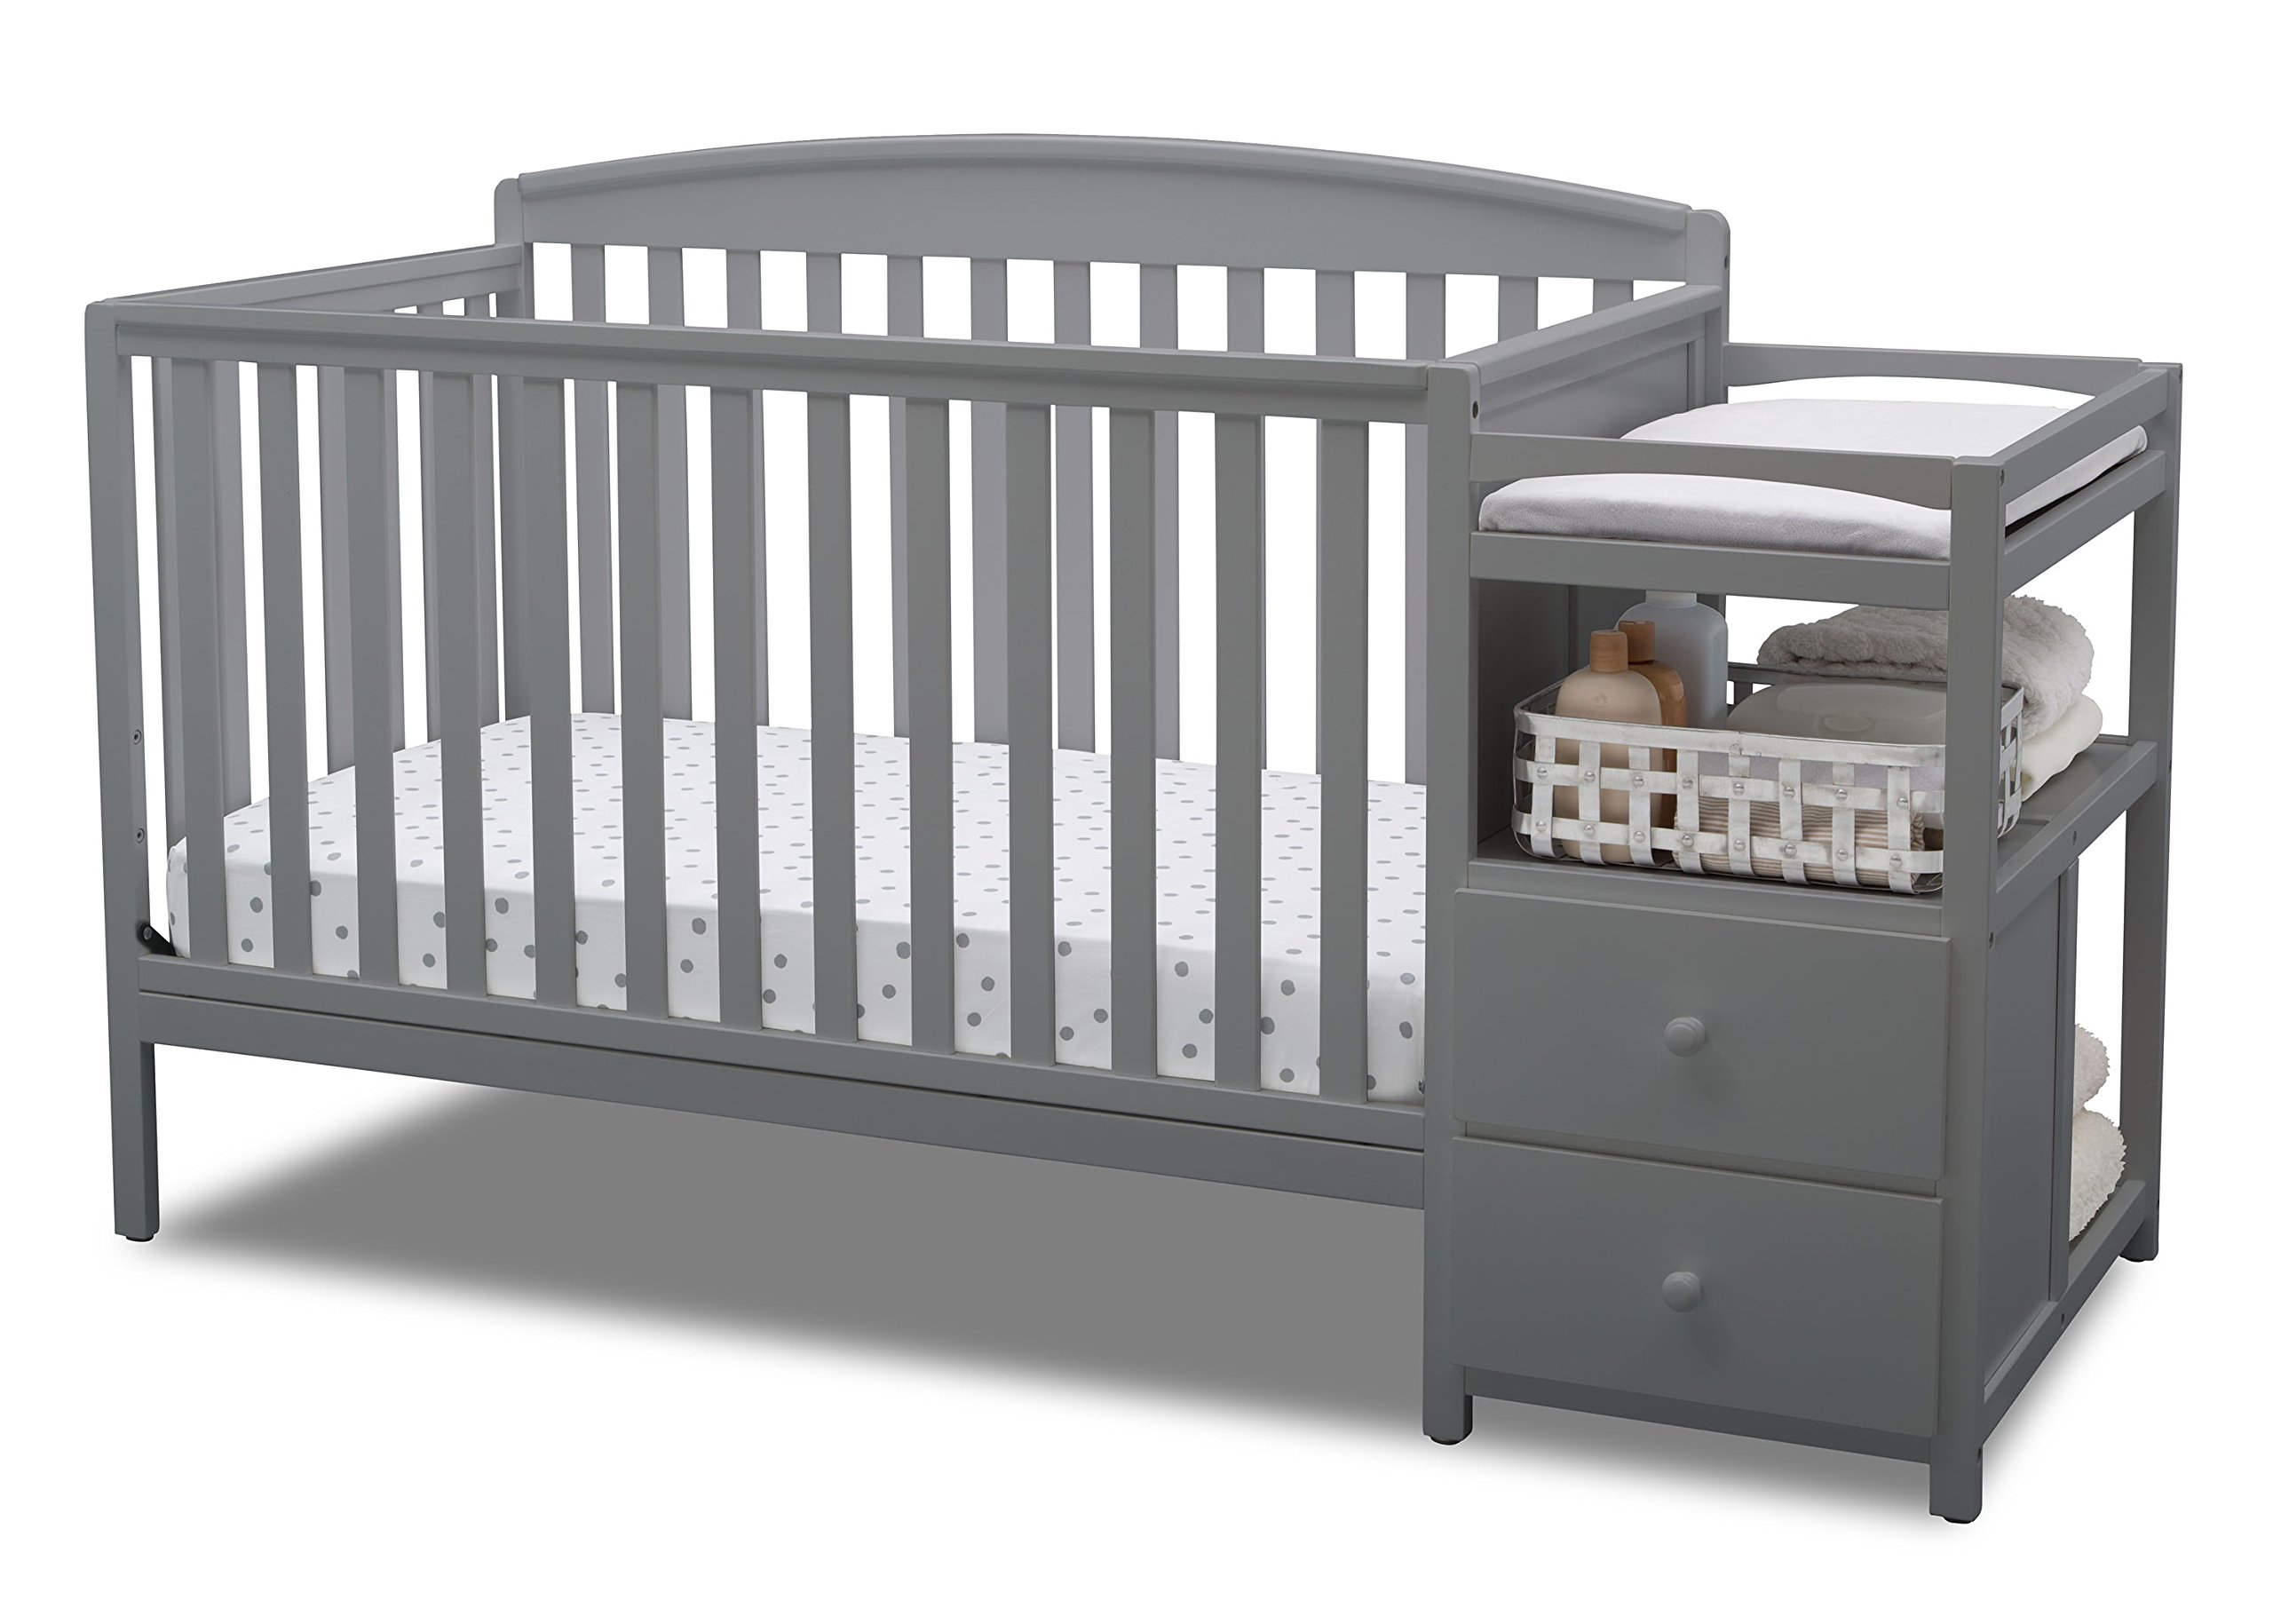 Gray All-In-One Convertible Crib, Toddler Bed, Daybed, and Changing Table Combo with Slates, Storage Drawers and Shelves